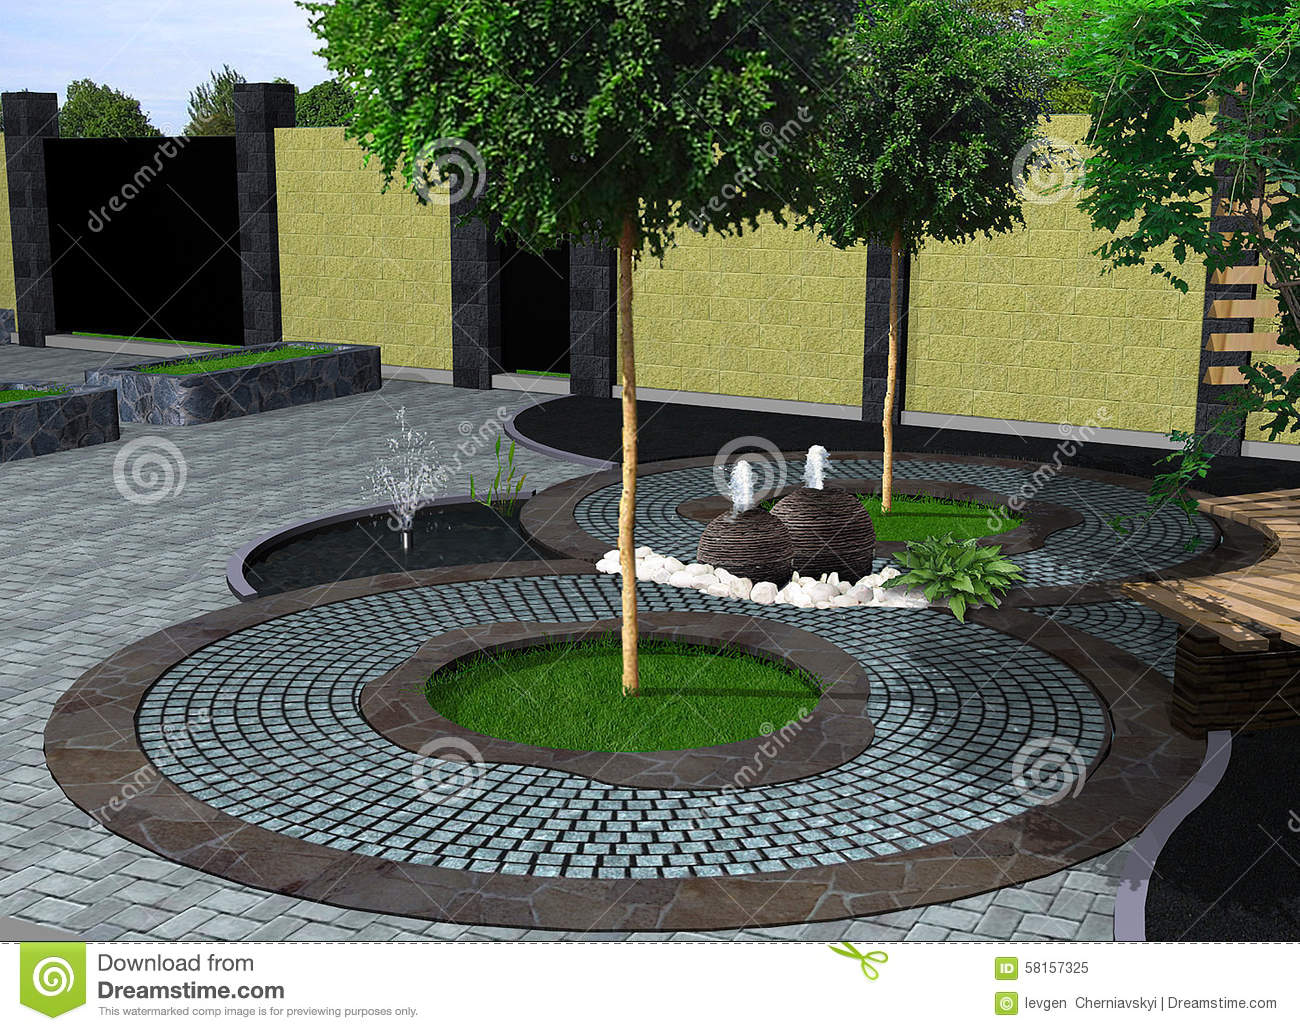 Landscape design decorative fountain 3d render stock for Landscape design site